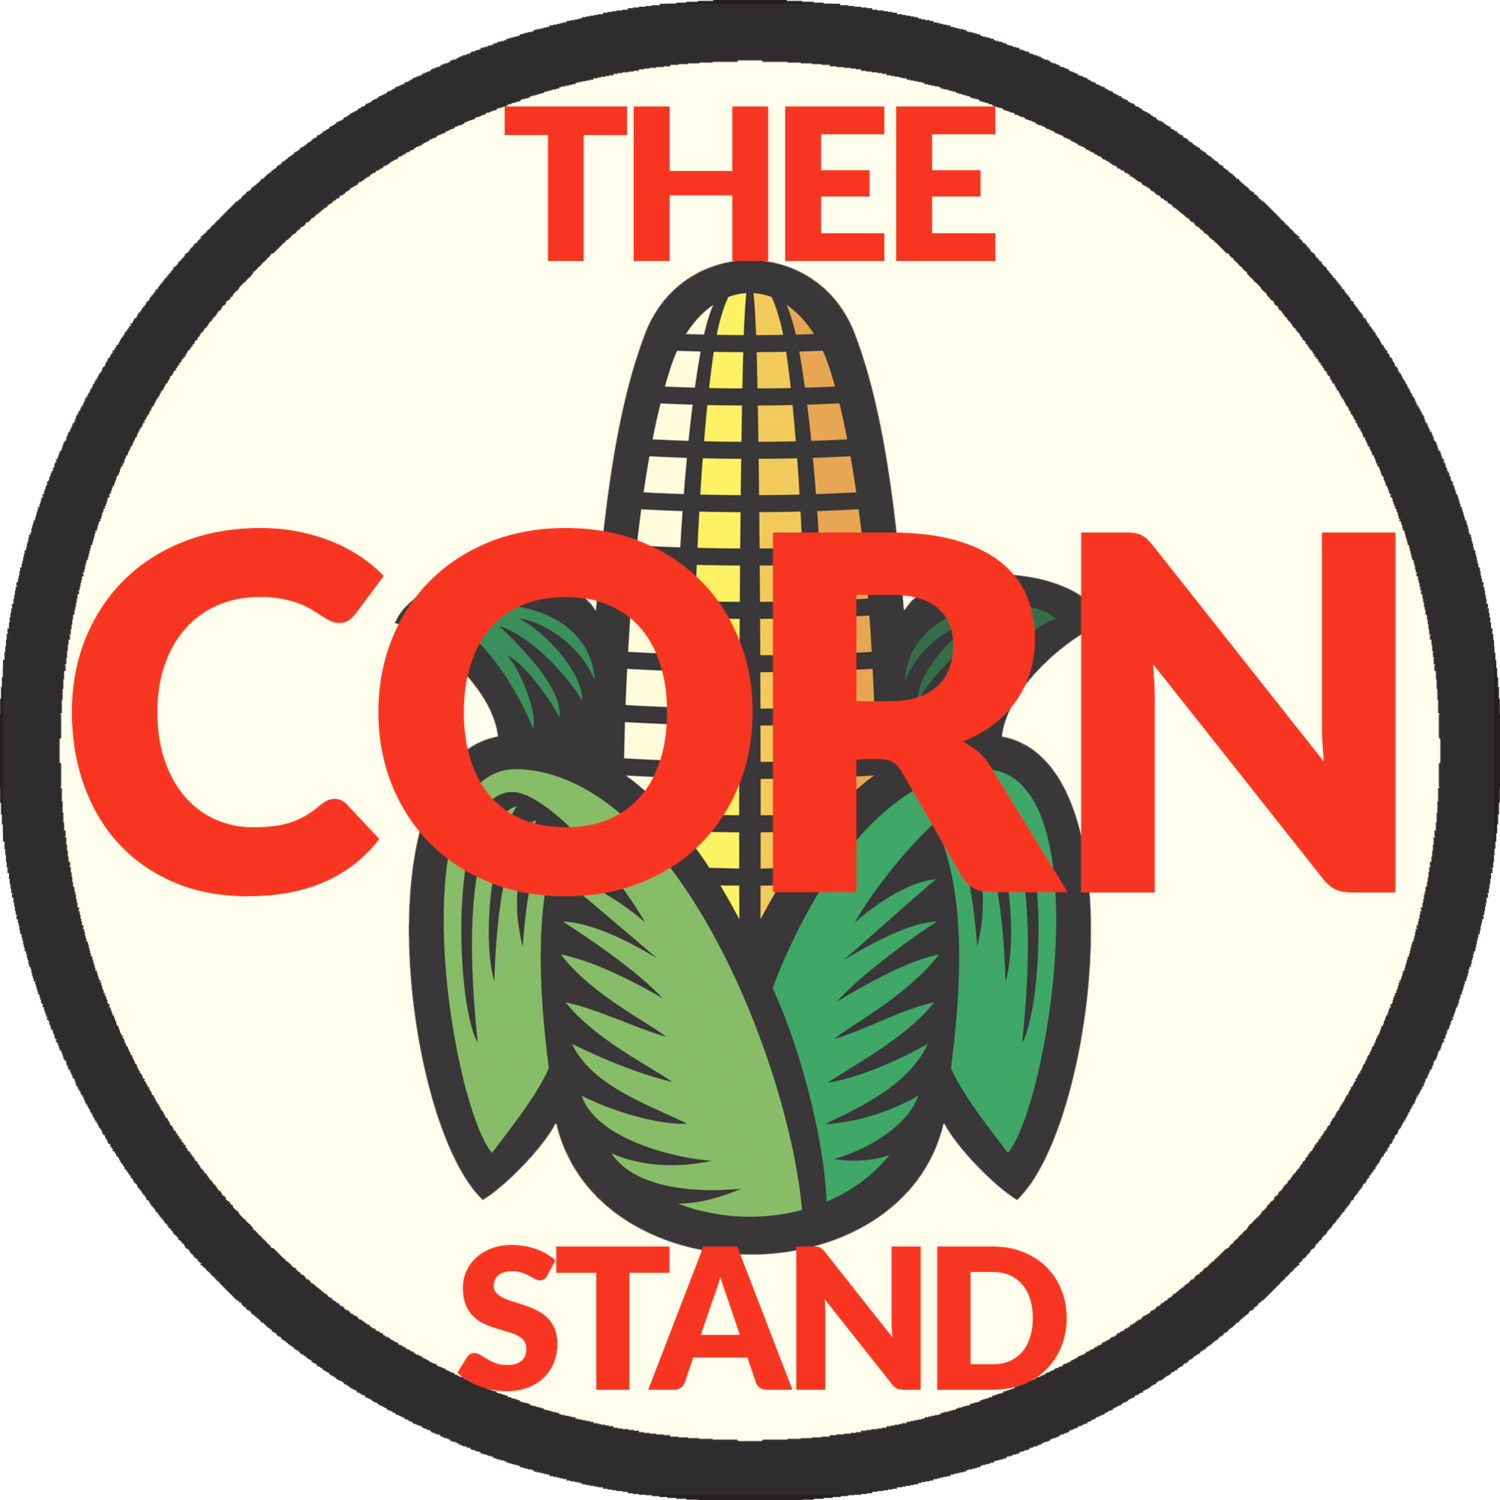 Thee Corn Stand